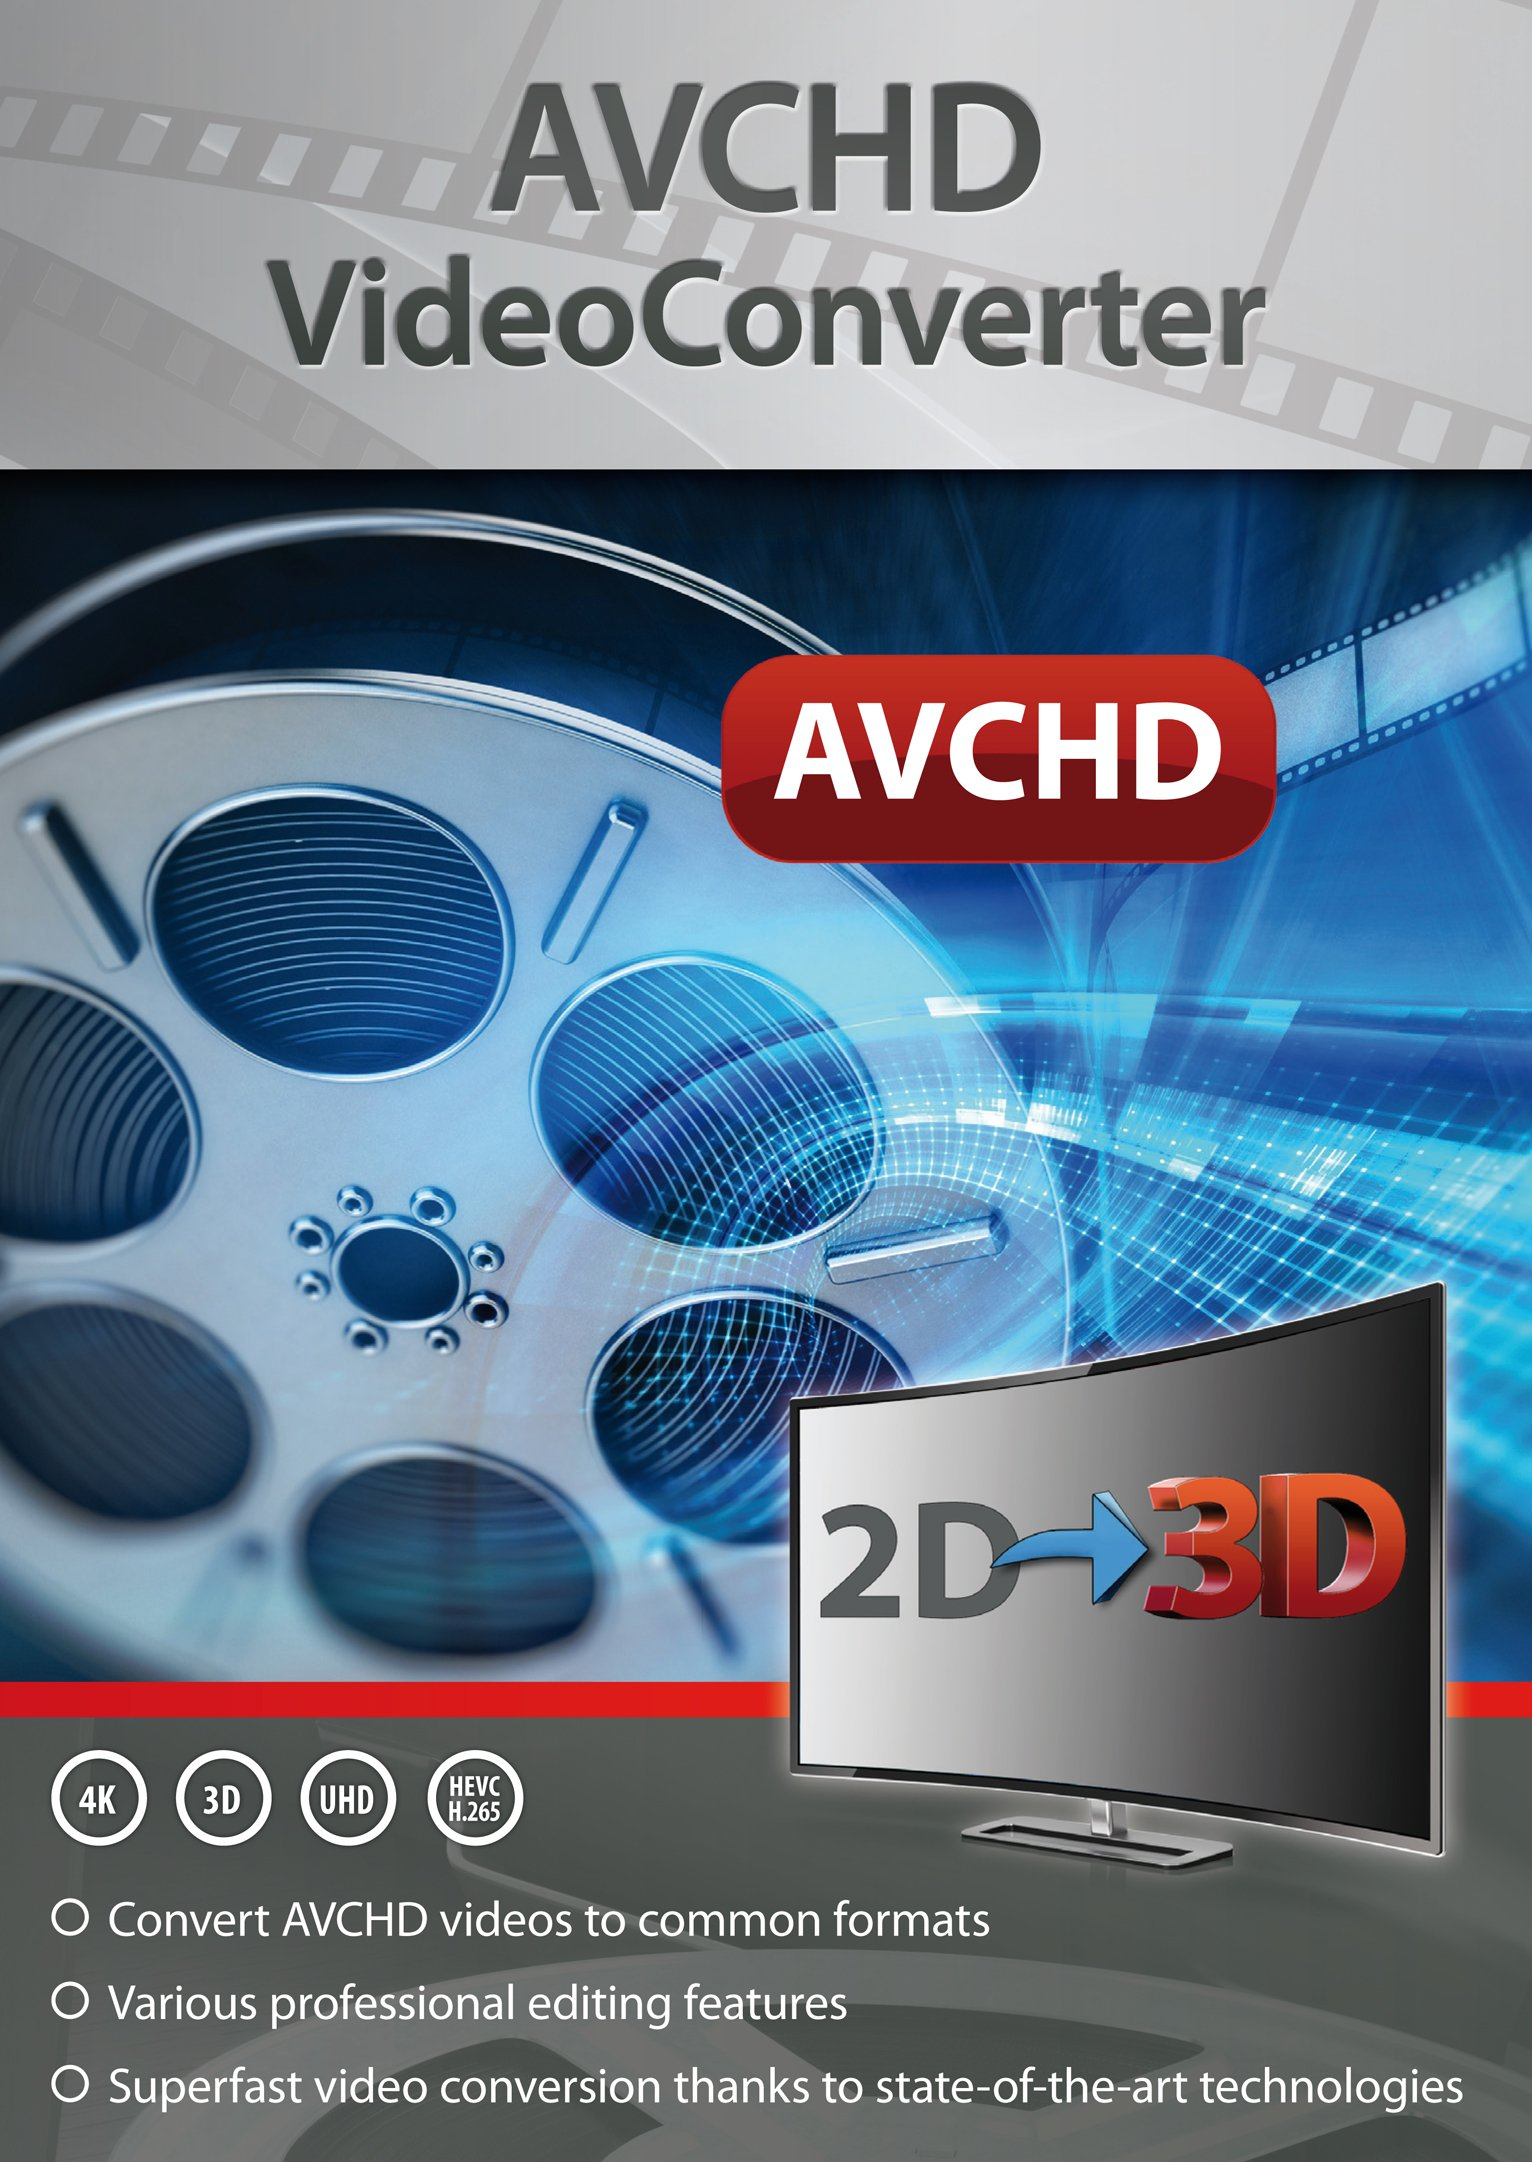 AVCHD Video Converter: Edit and Convert Files from over 50 Formats into any Video or Audio Format - Great Program to support Video Cutting - For Windows 10 / 8.1 / 8 / 7 by Markt+Technik